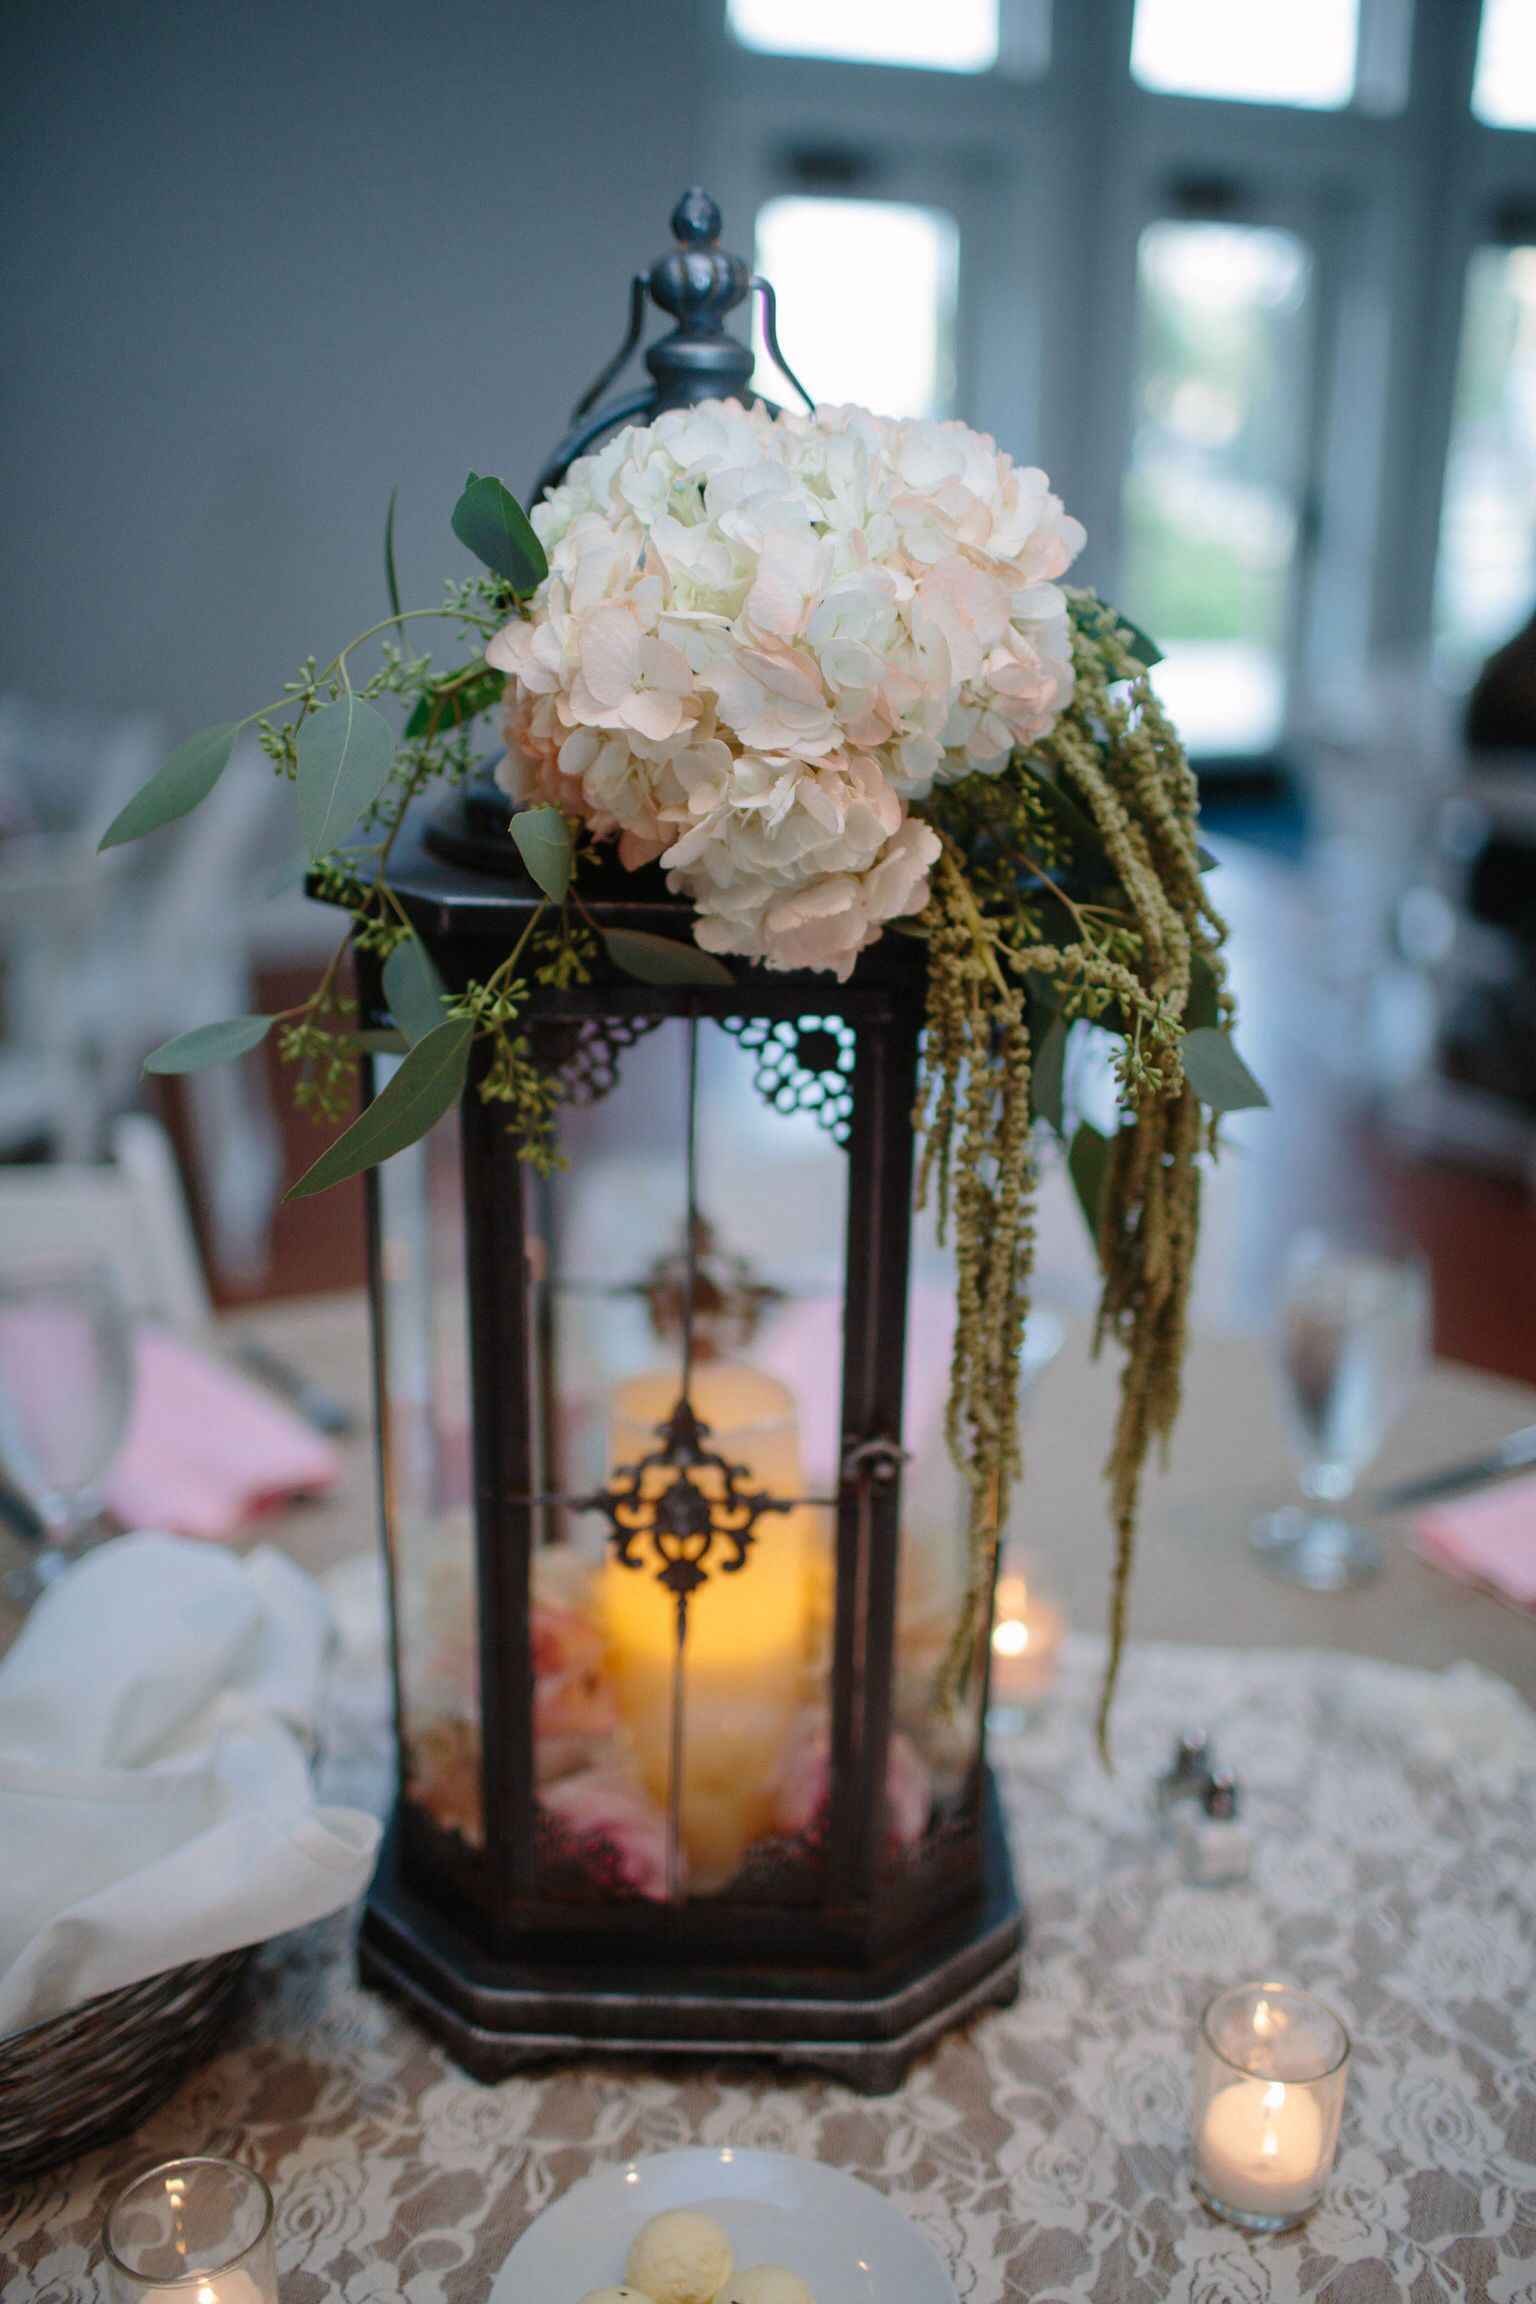 Tall lantern centerpiece hobby lobby Wedding Pinterest